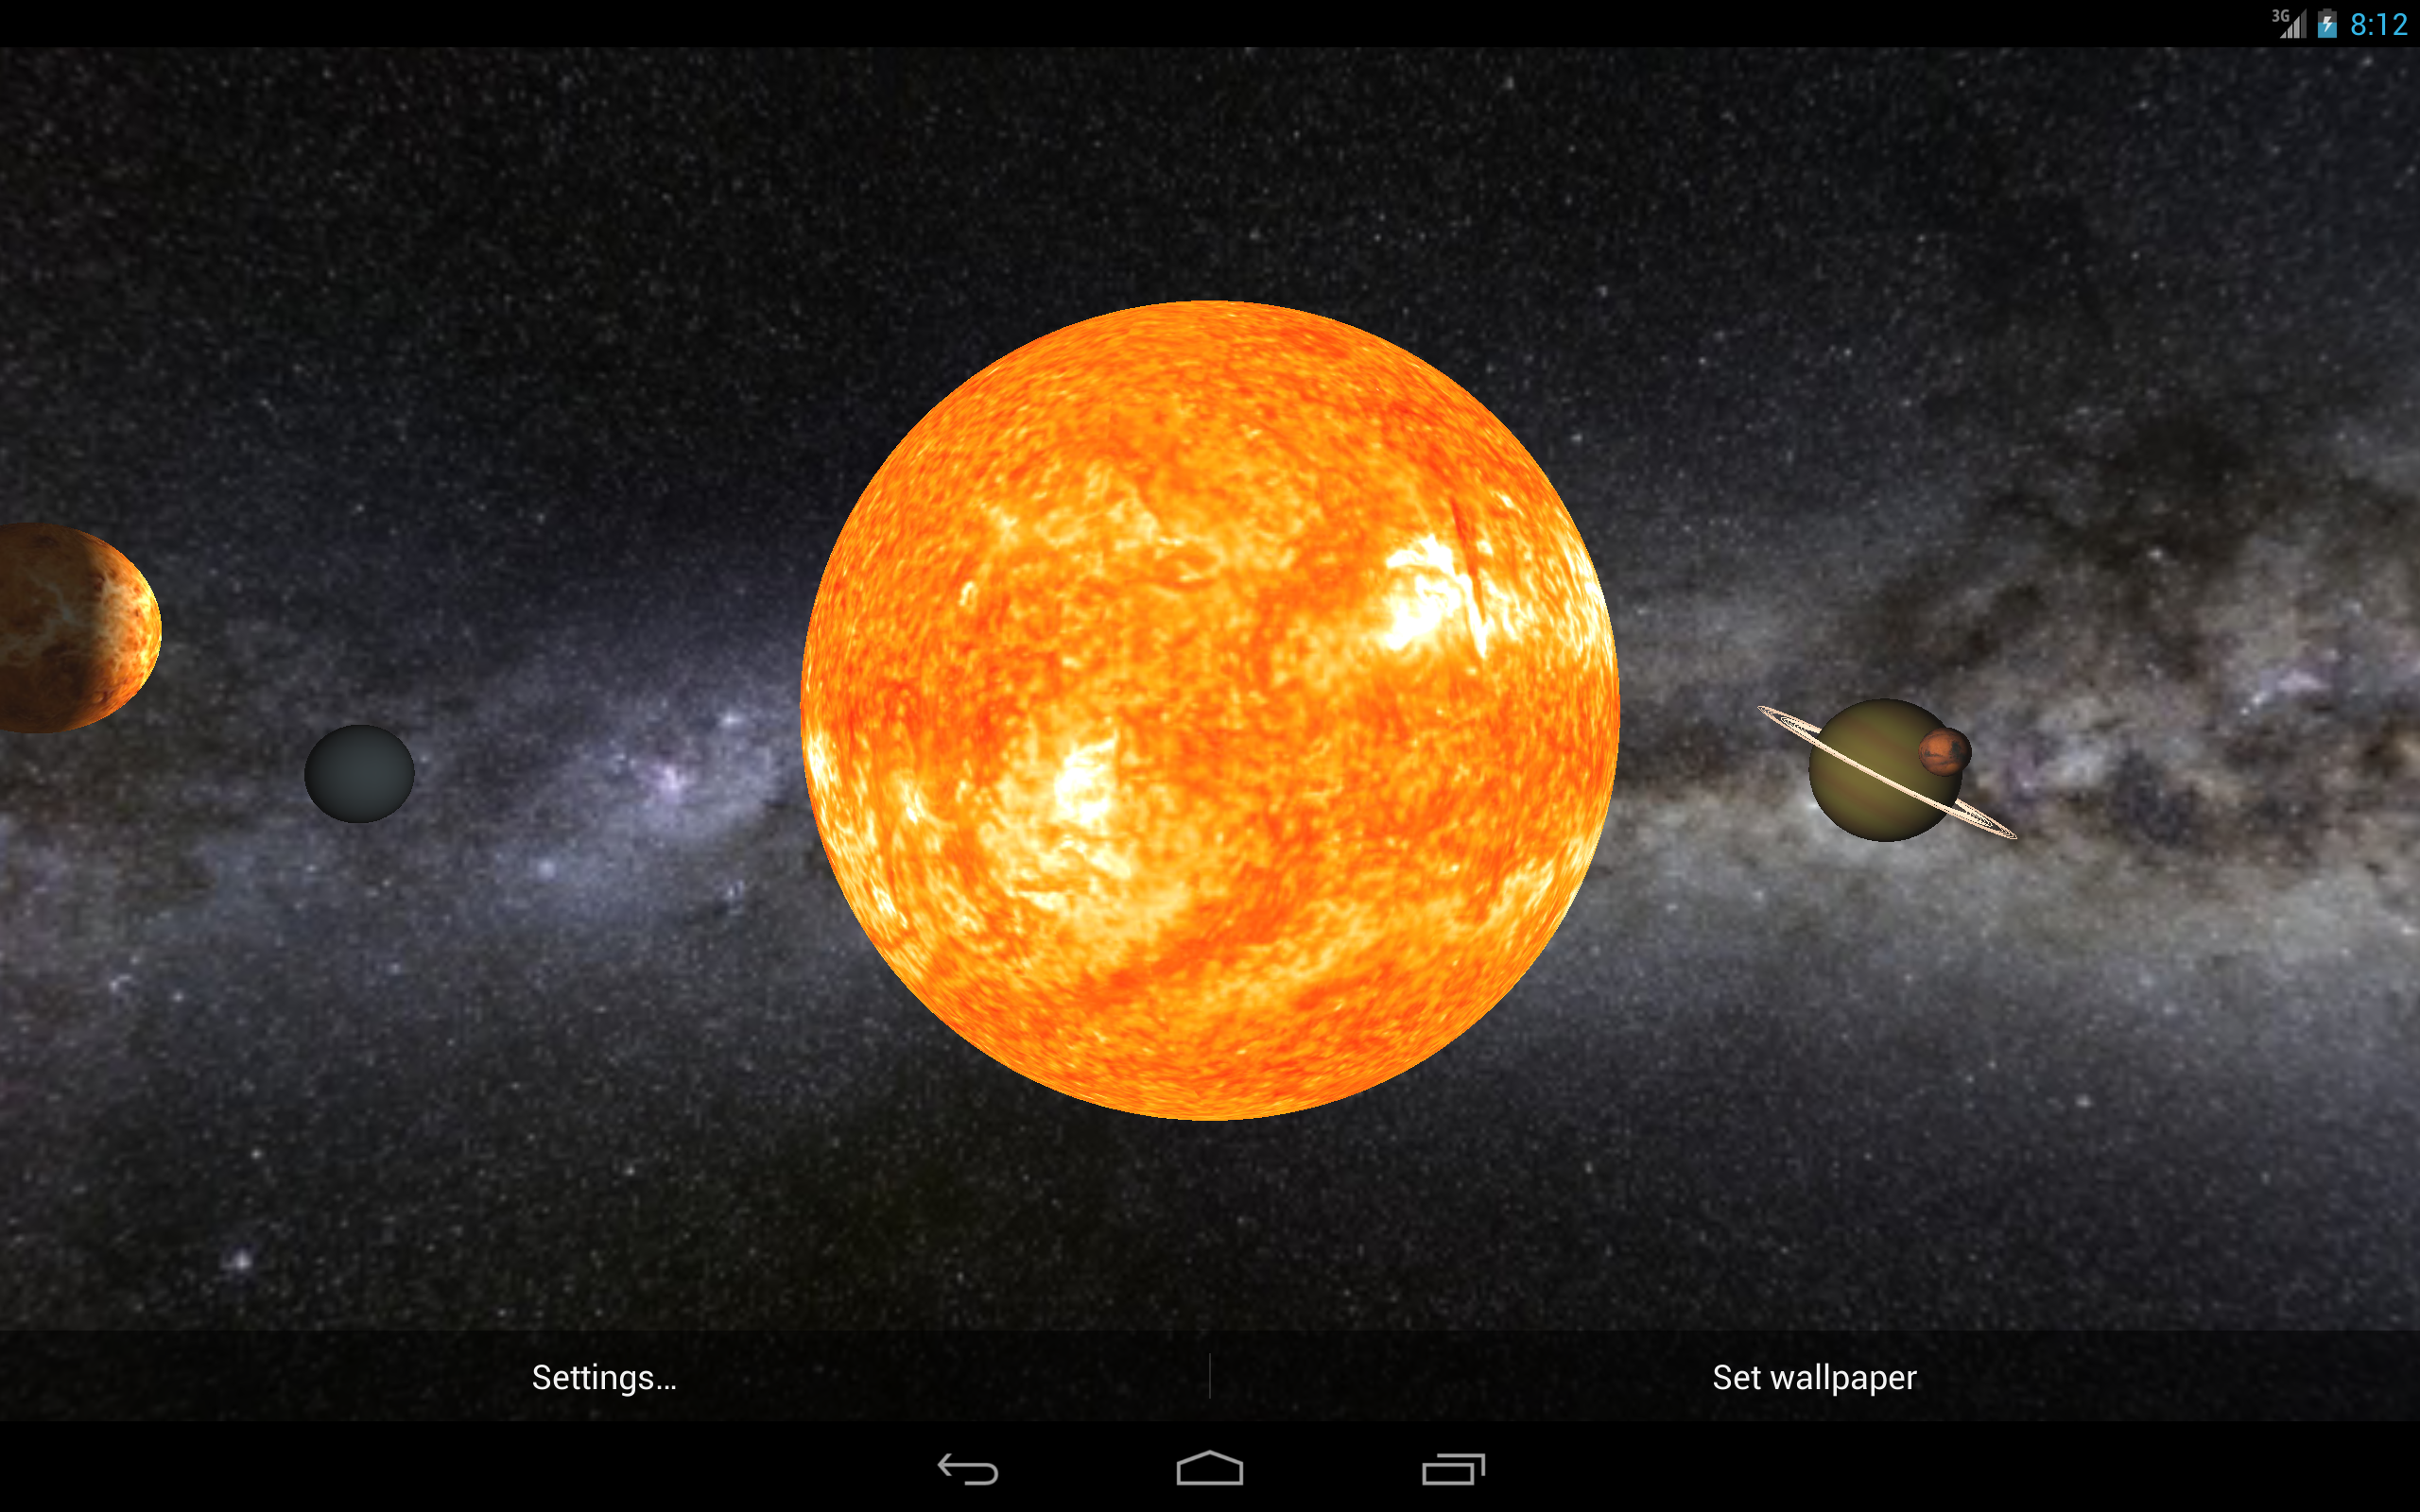 Solar System Live Wallpaper 3D: Amazon.co.uk: Appstore for ...